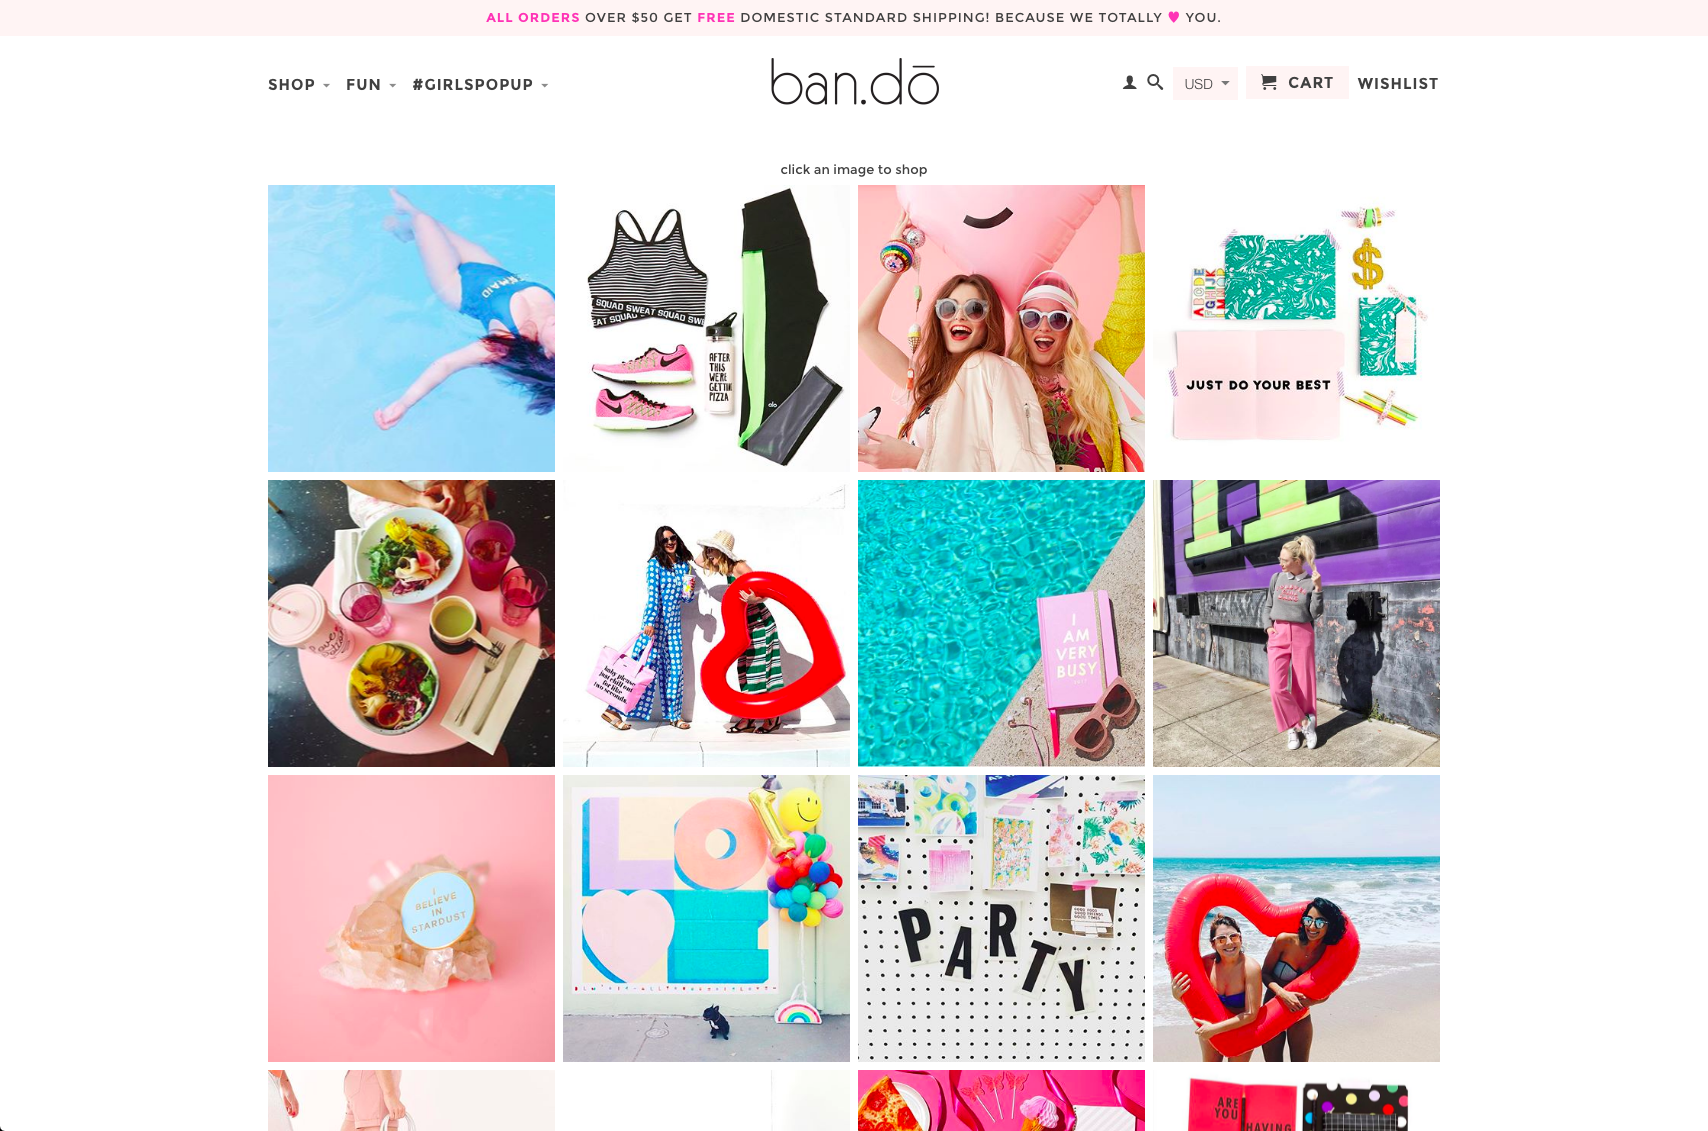 bando shoppable instagram